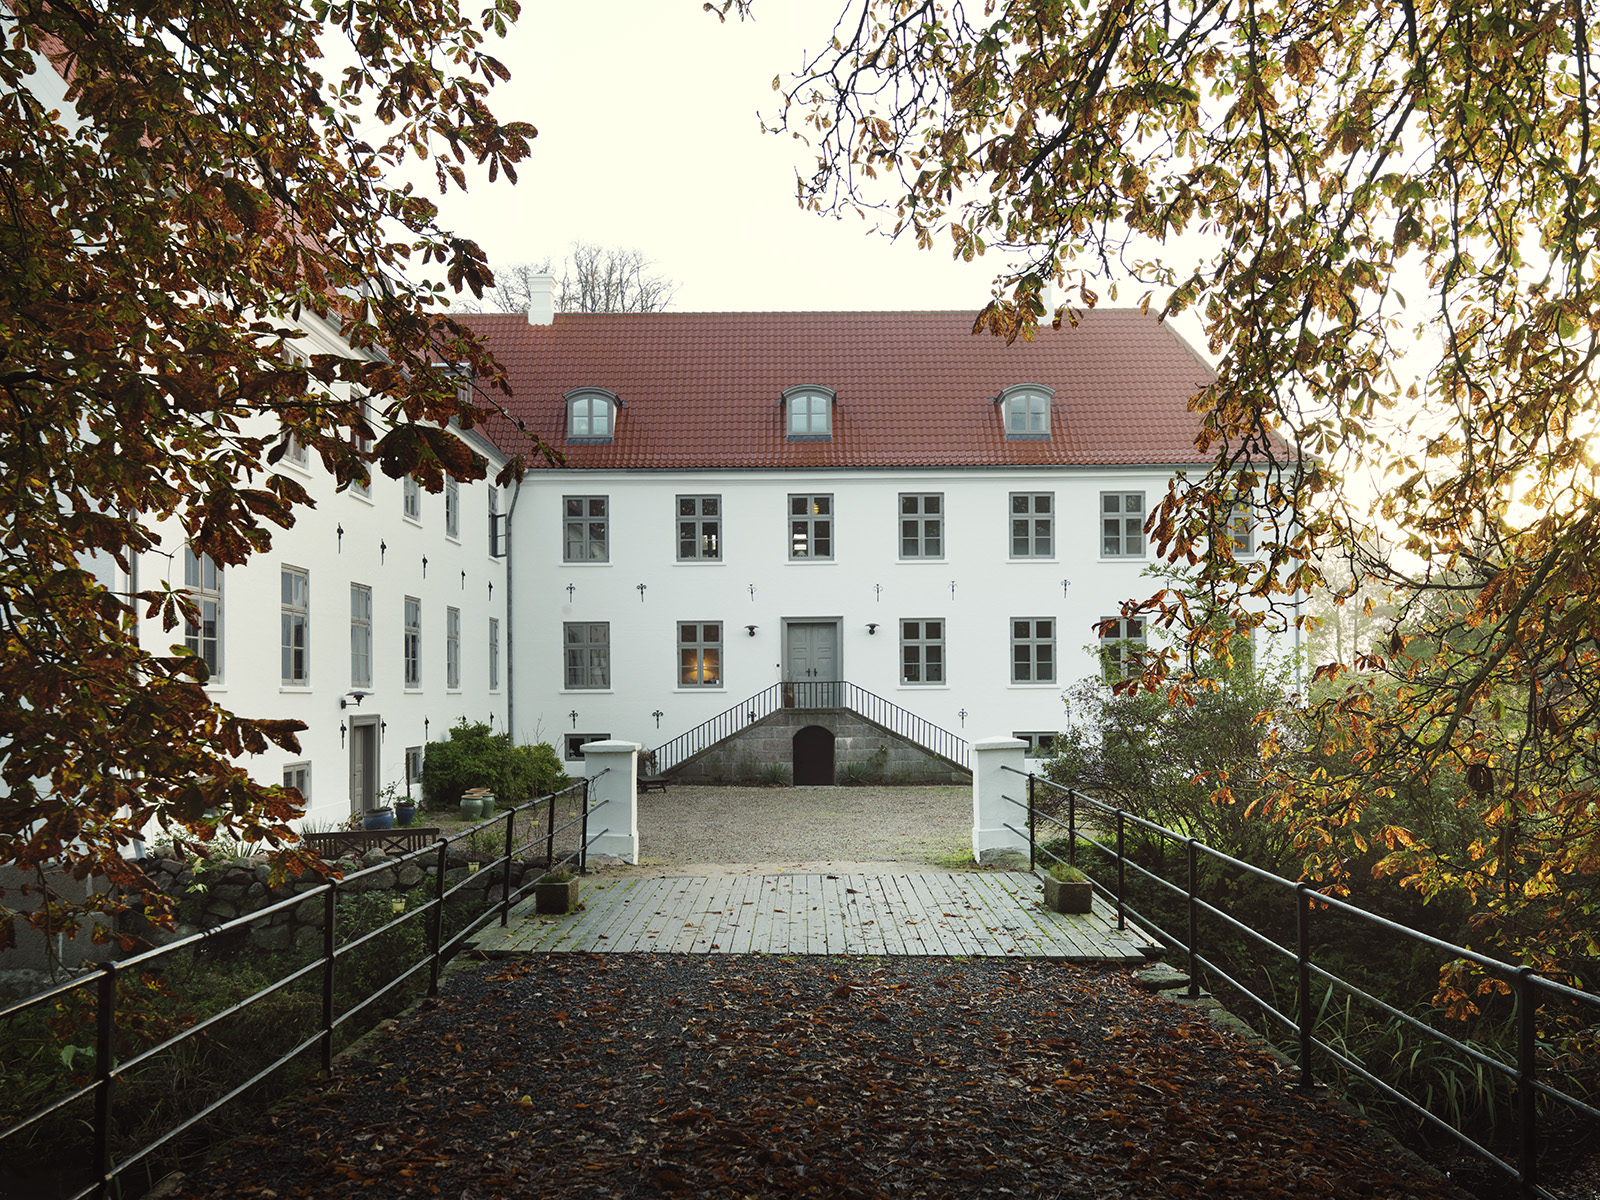 Entrance to the home of Knud Erik Hansen